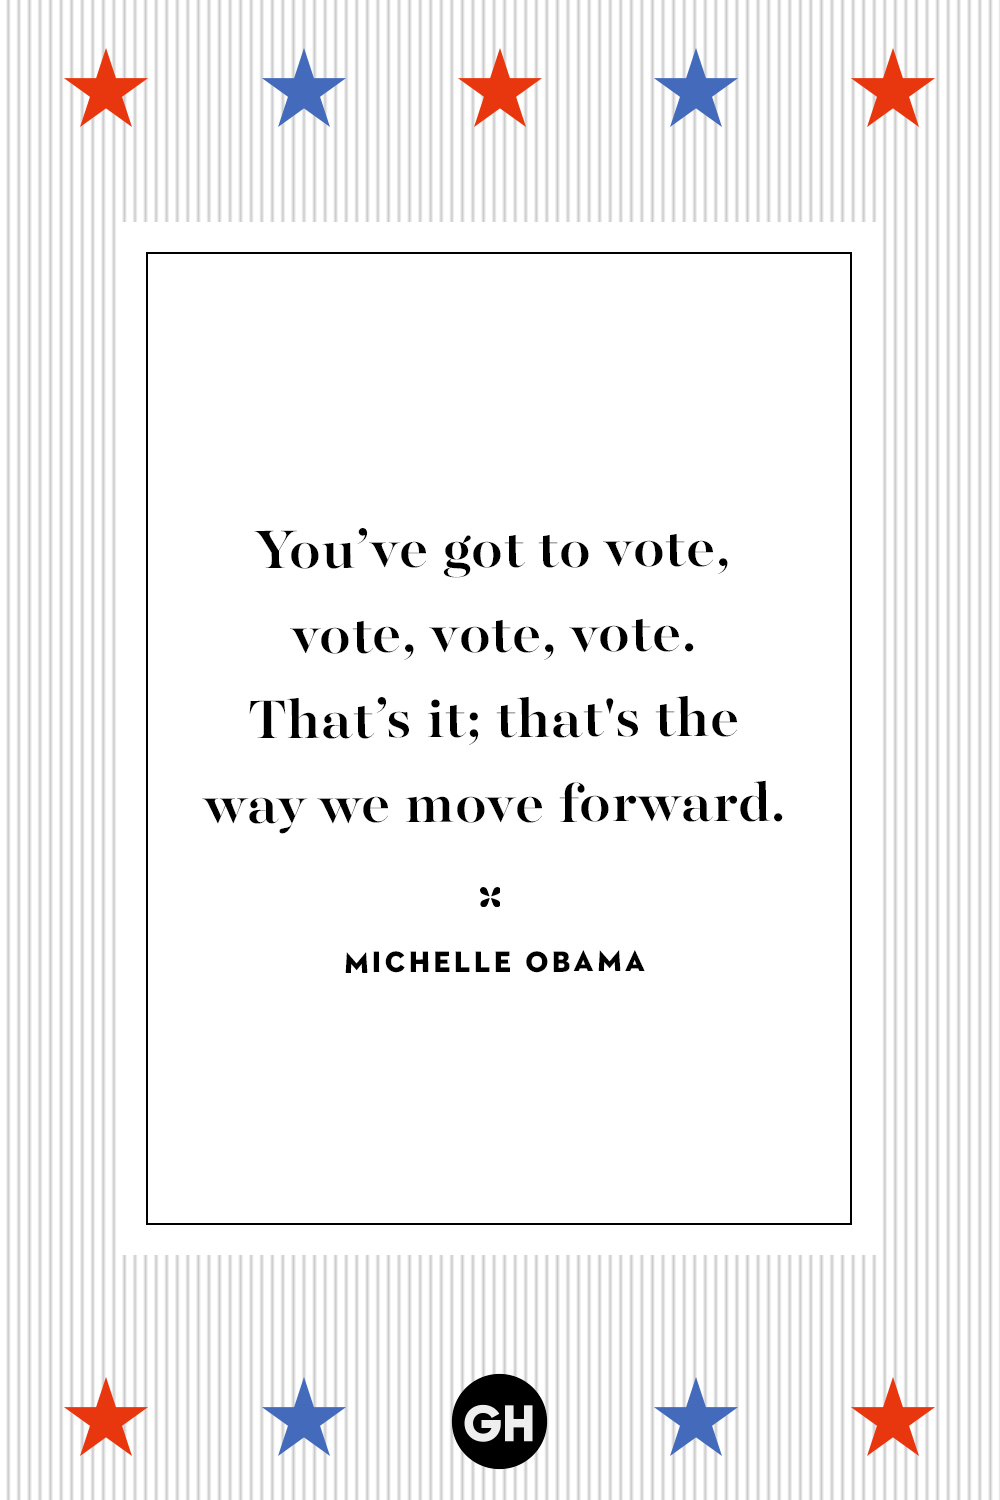 4 Best Voting Quotes - Election Quotes That Will Inspire Action